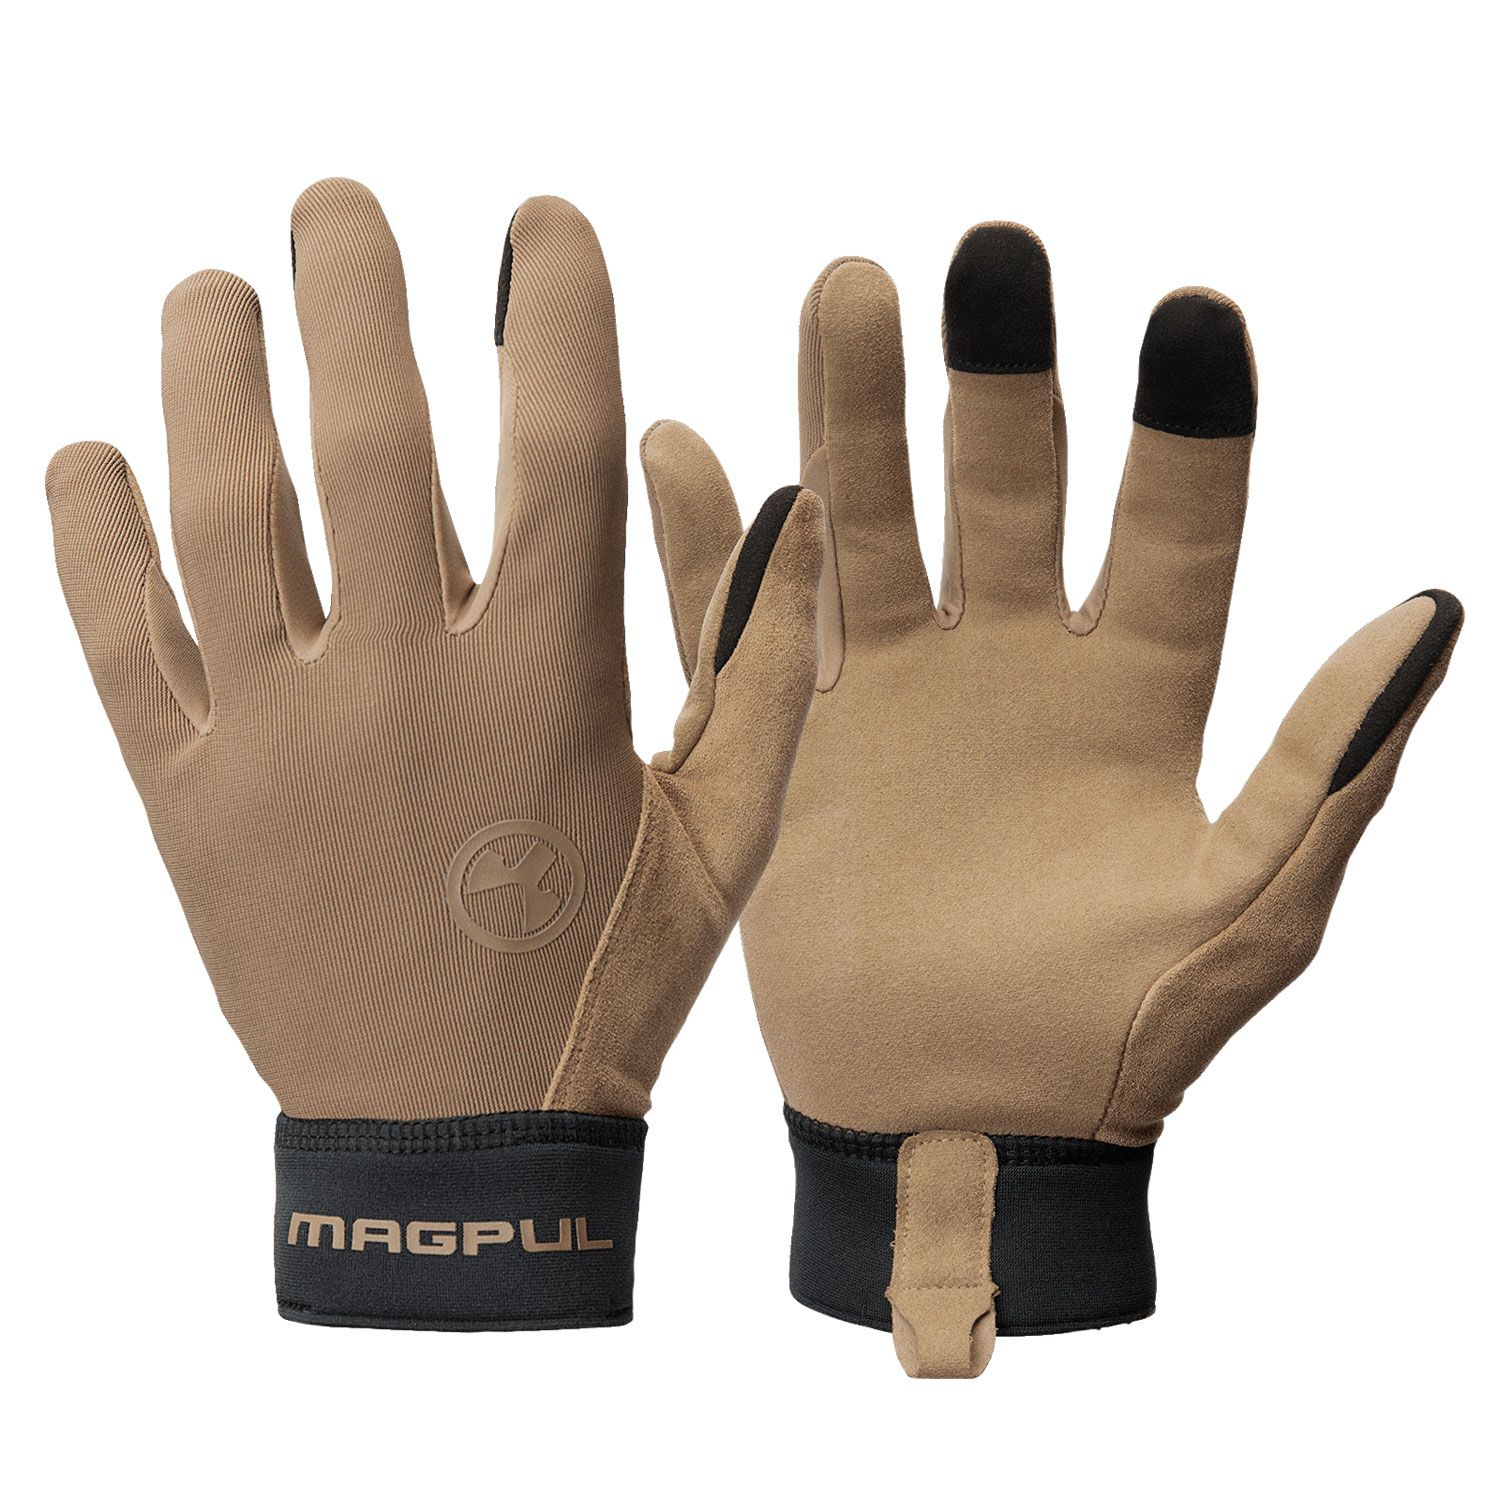 Magpul MAG1014-251 Technical Glove 2.0 XXL Coyote